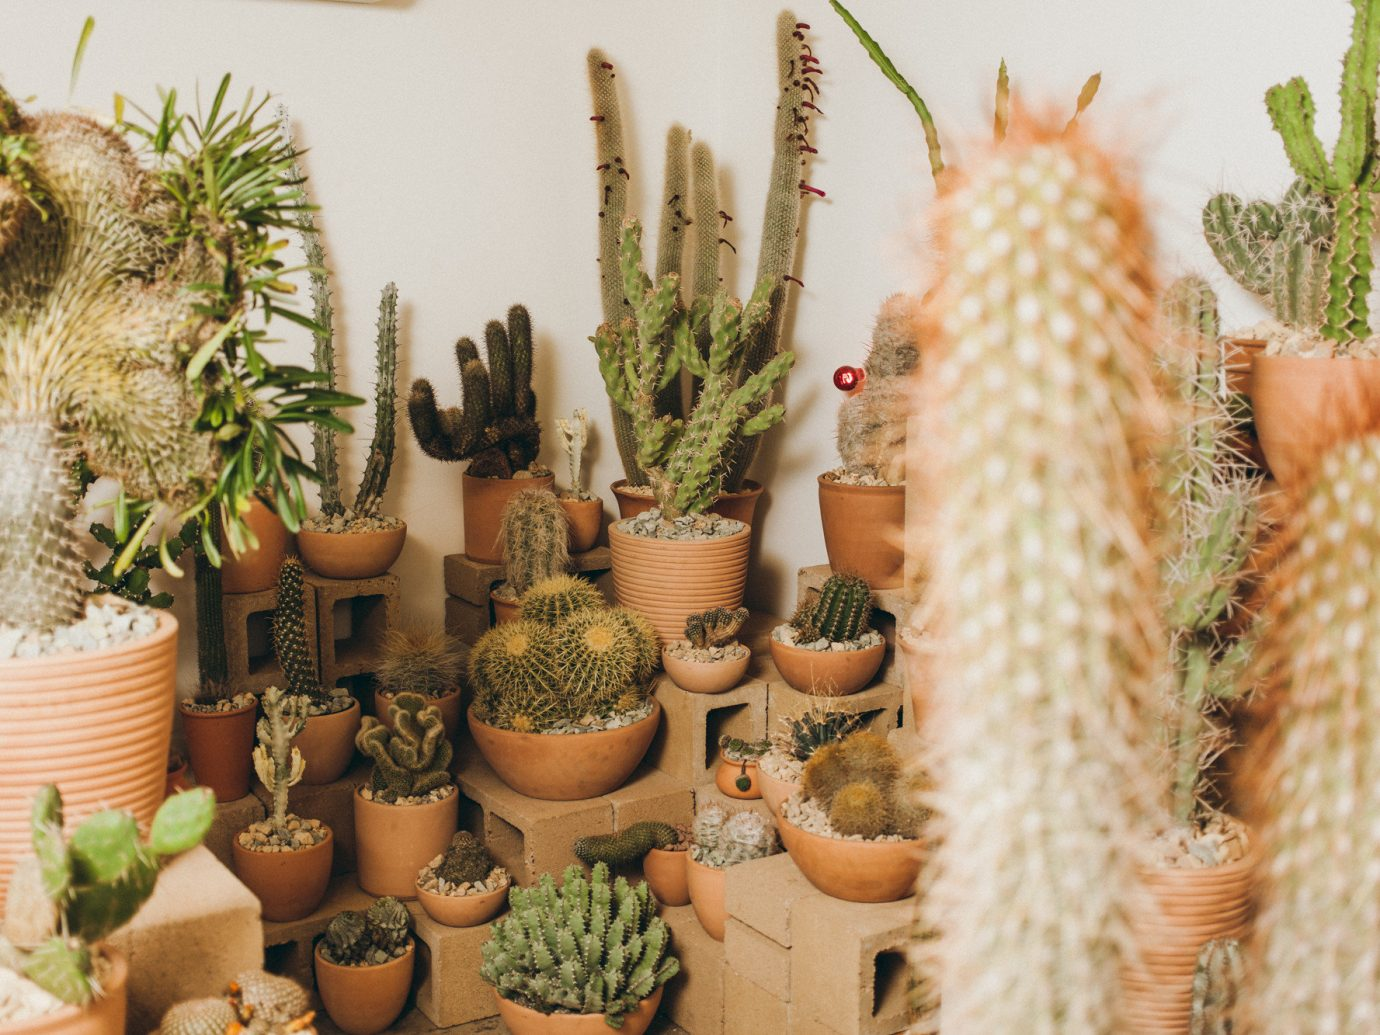 Offbeat Style + Design Travel Trends plant cactus flowerpot hedgehog cactus flowering plant caryophyllales decorated arranged several